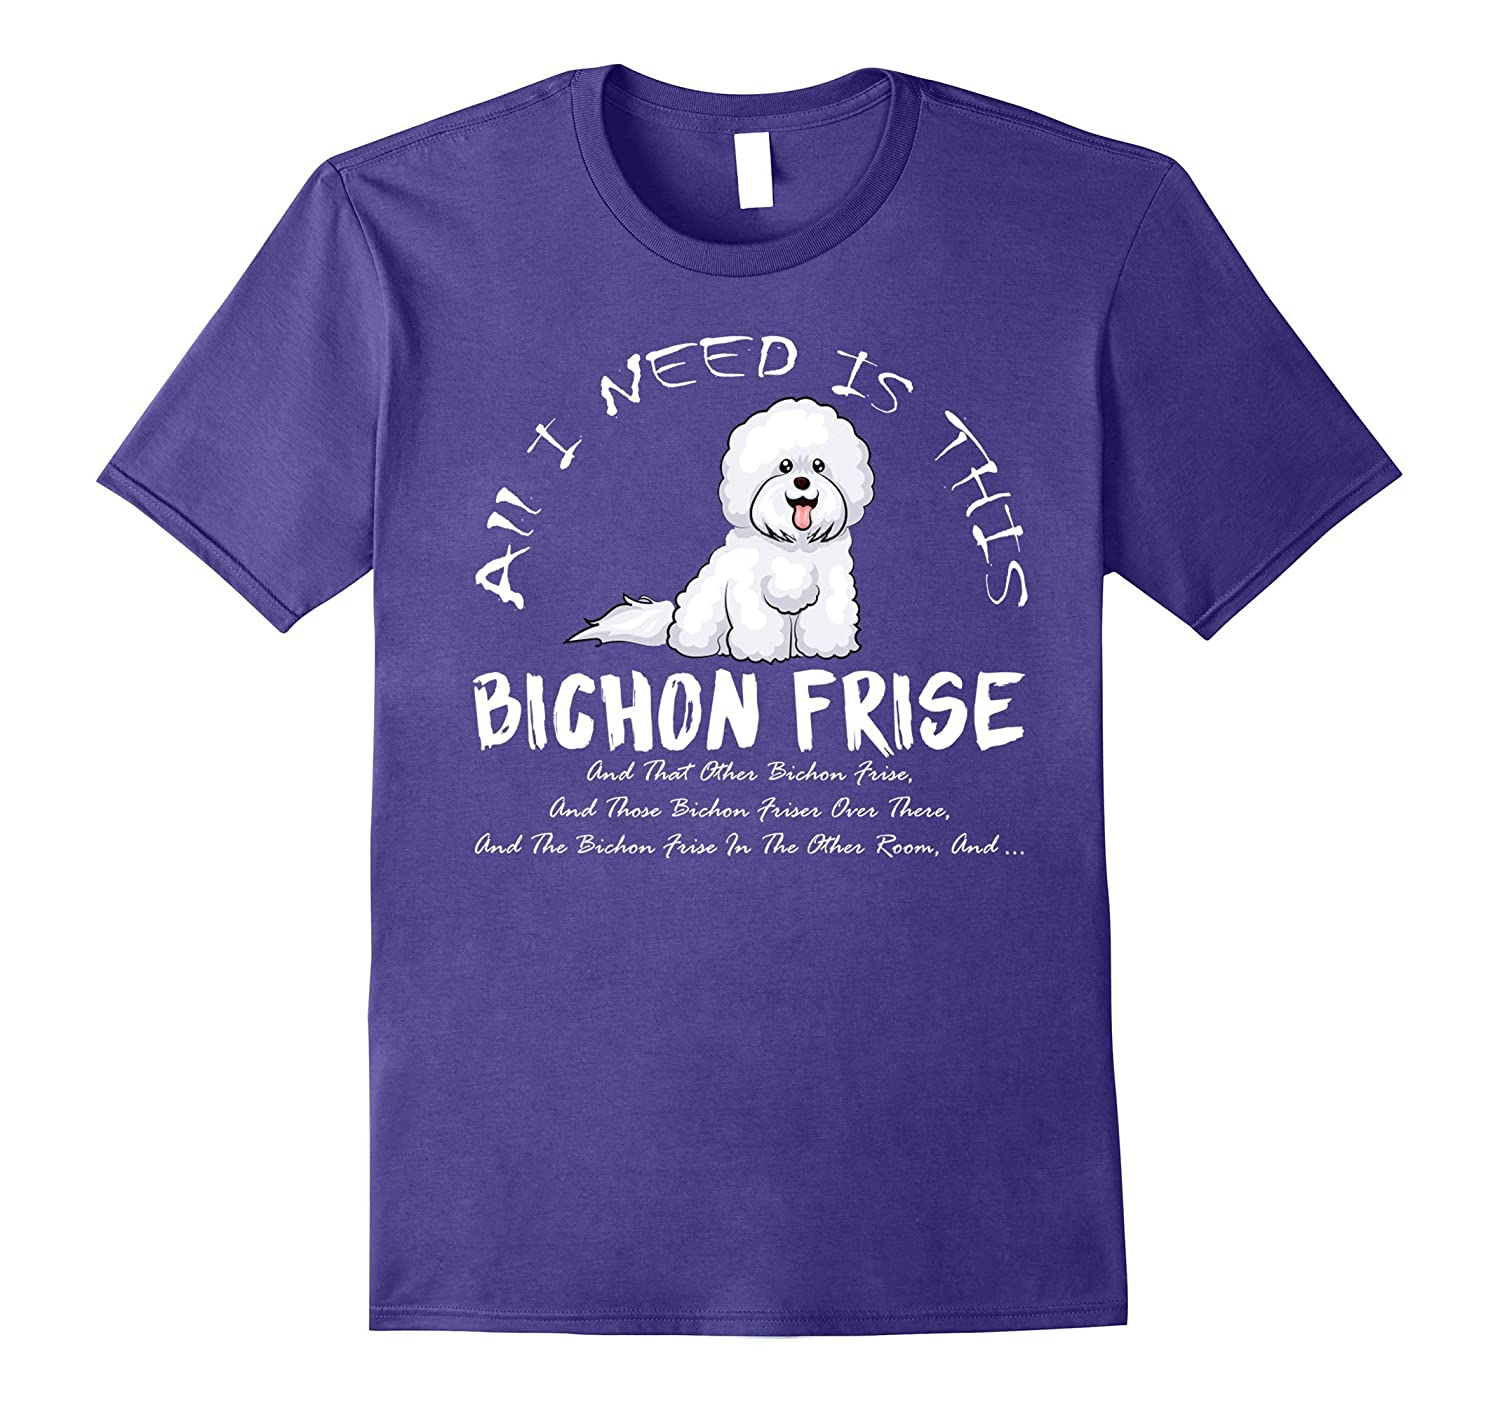 All I need is Bichon Frise Funny Love Shirts-Art